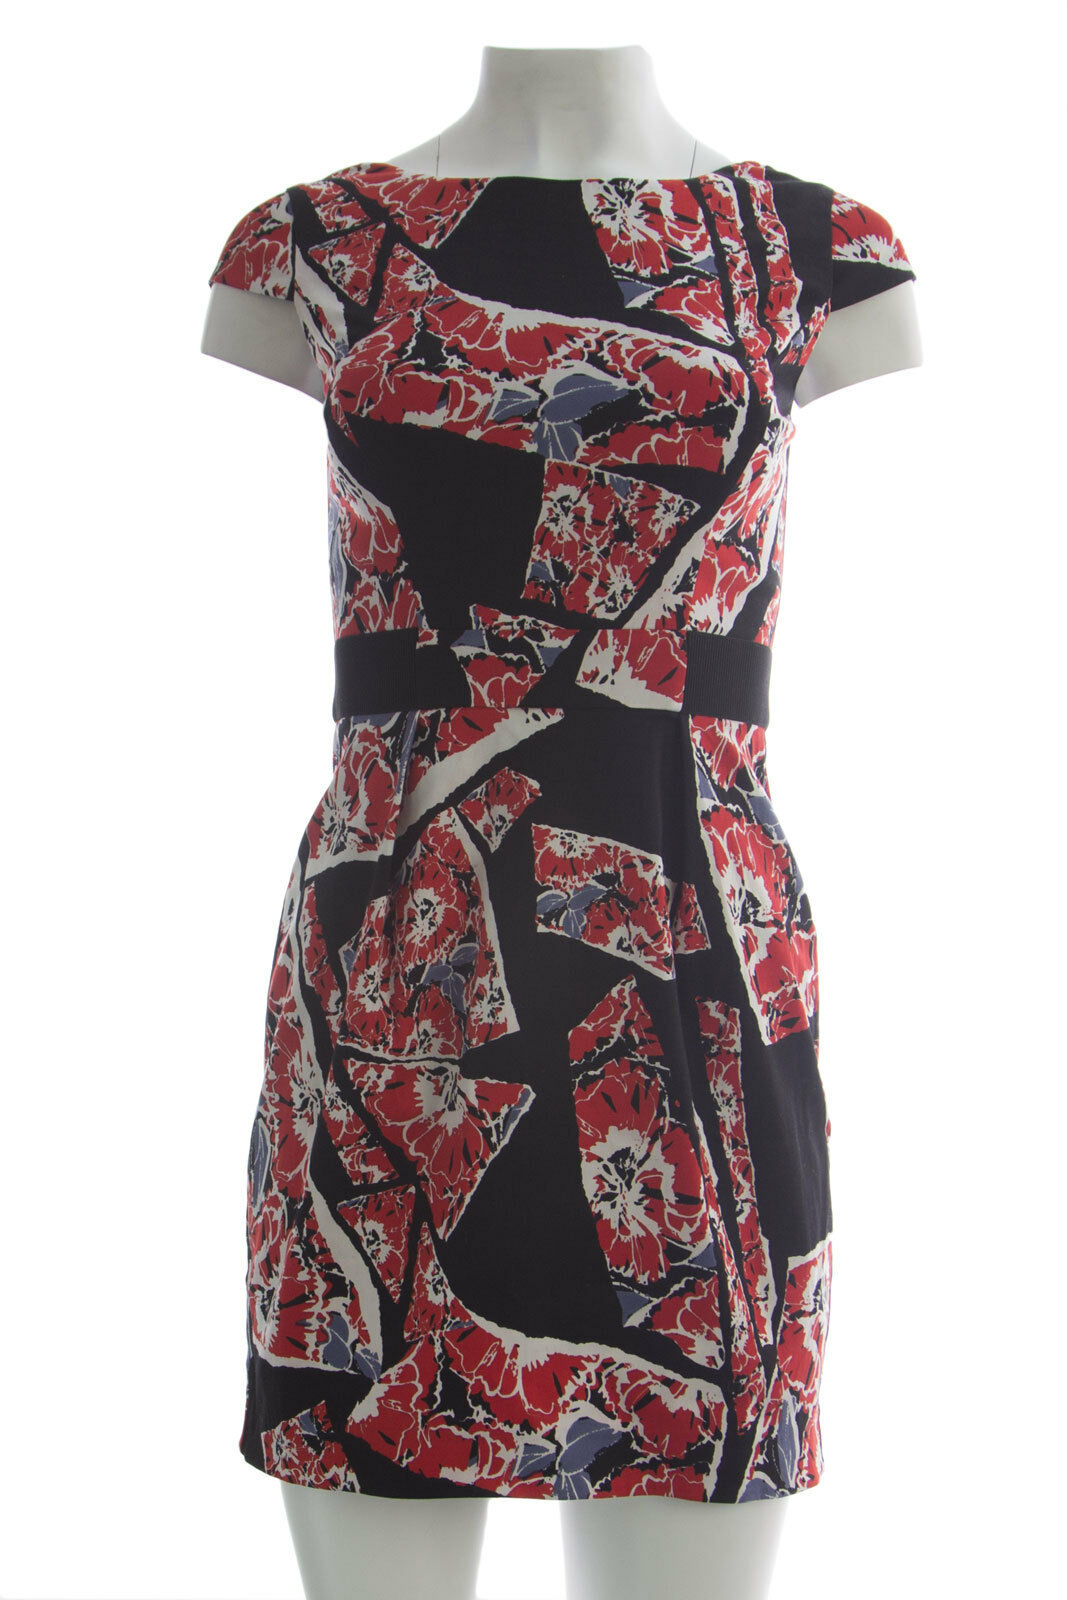 French Connection Women's Riot Red Floral Print Cap Sleeve Dress Sz 2 NWT